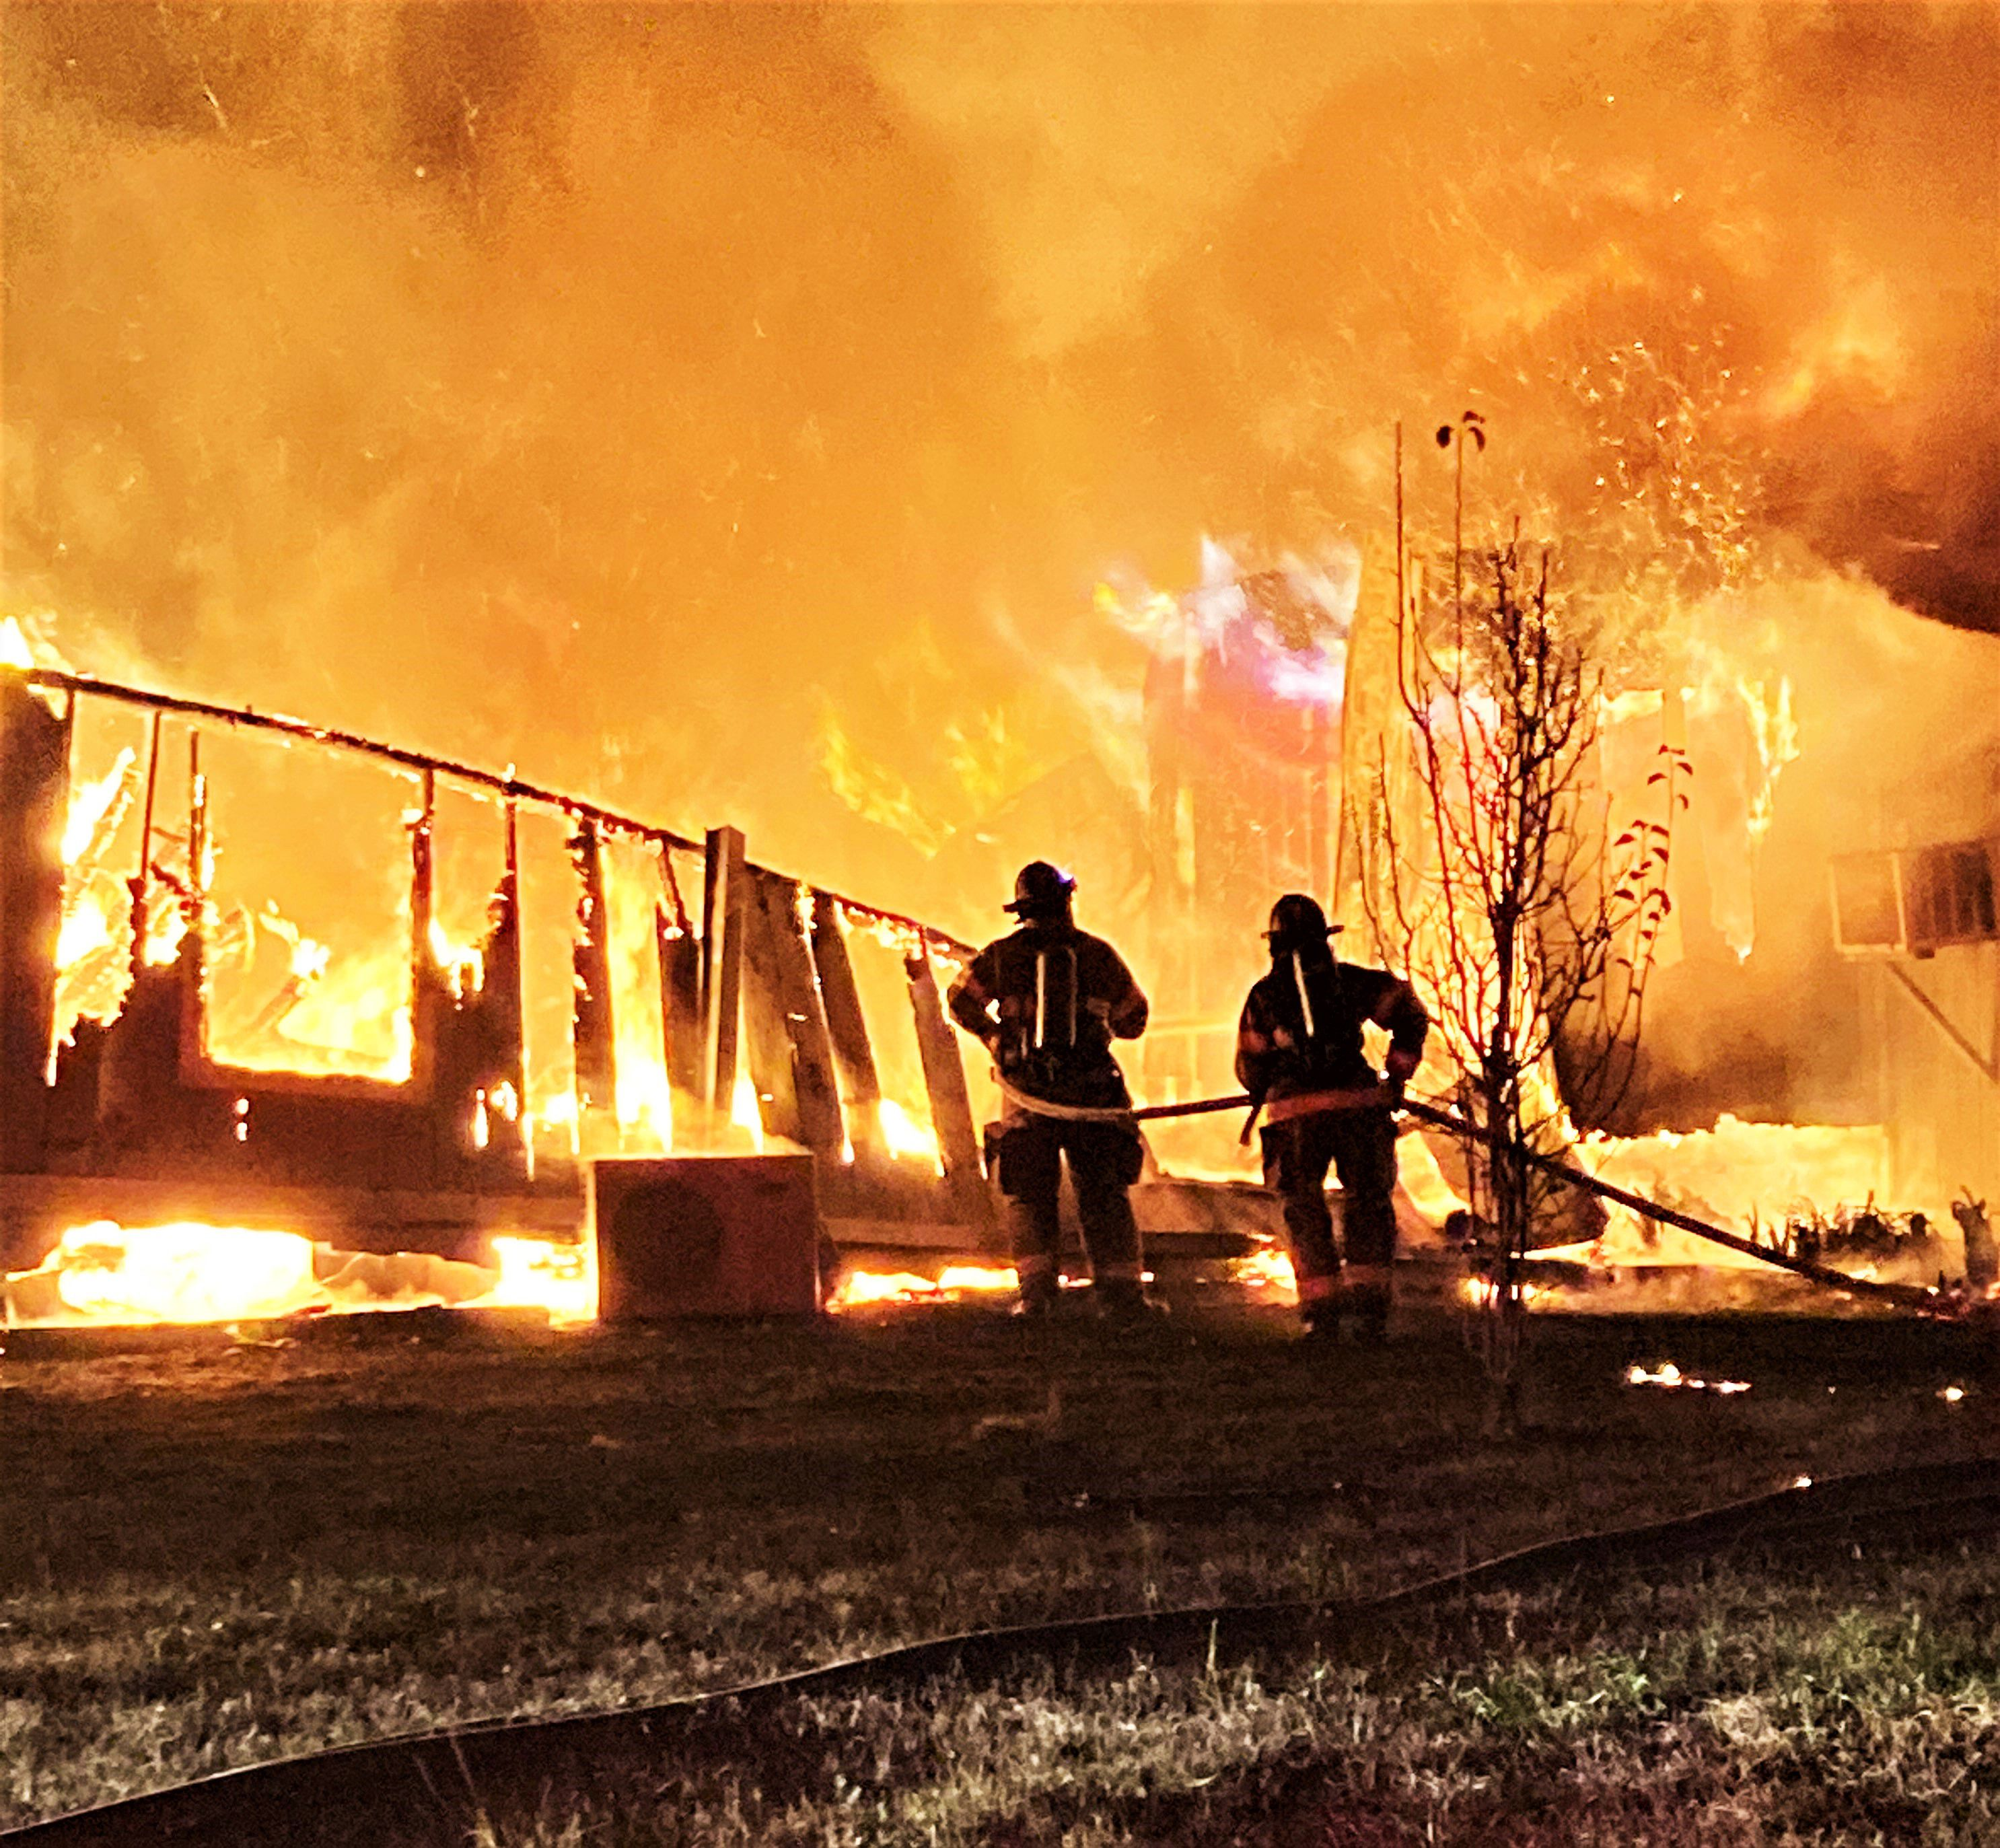 Photos show firefighters battle intense house fire in Bradford County